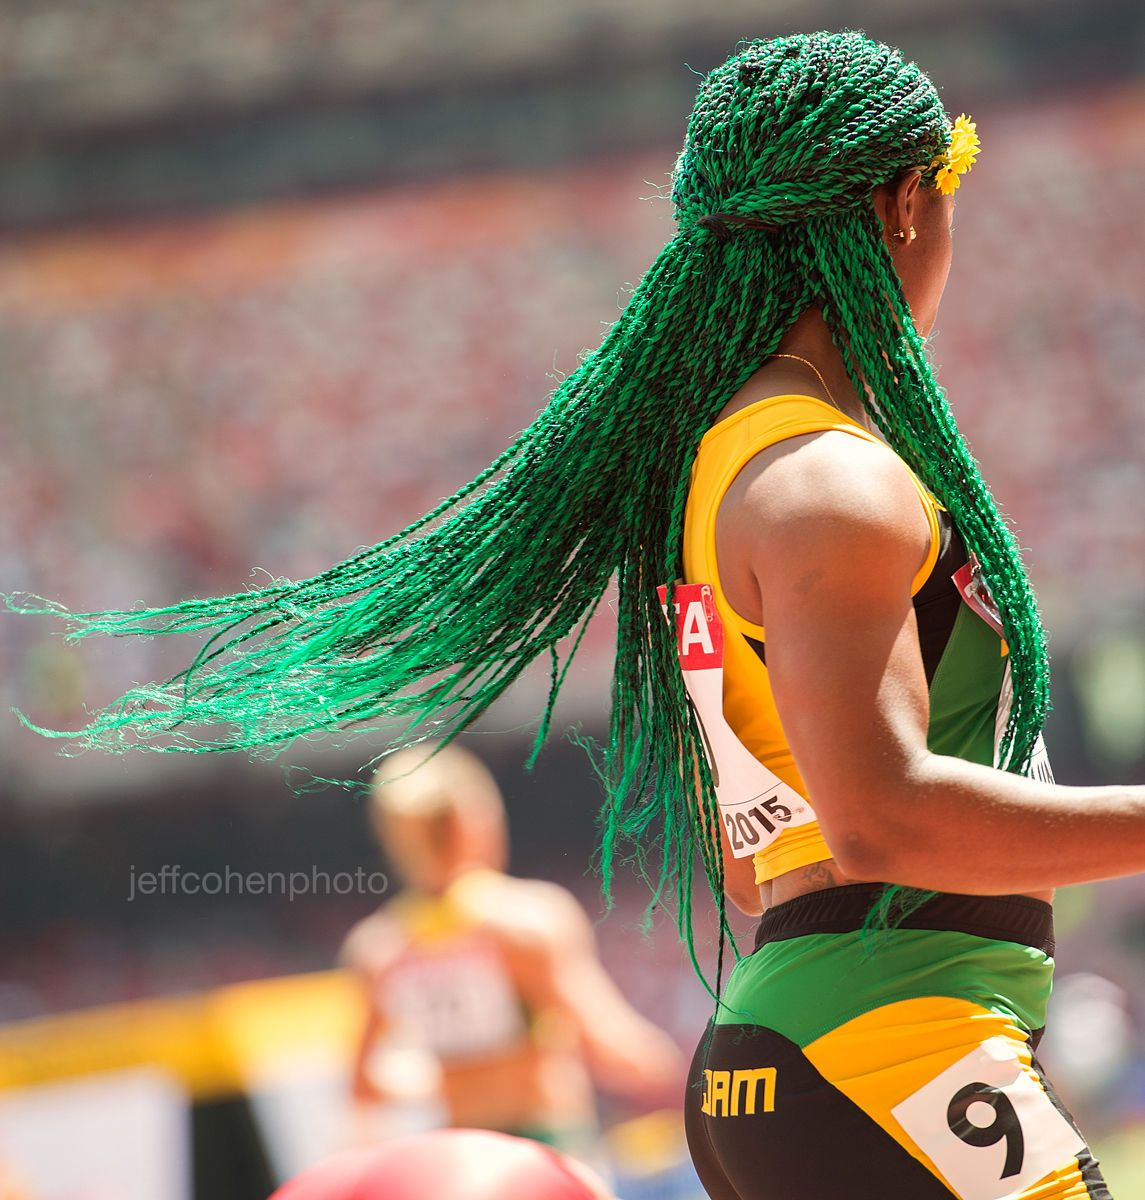 1beijing2015_day2_shelly_ann_jam_hair_jeff_cohen_photo_5954web.jpg